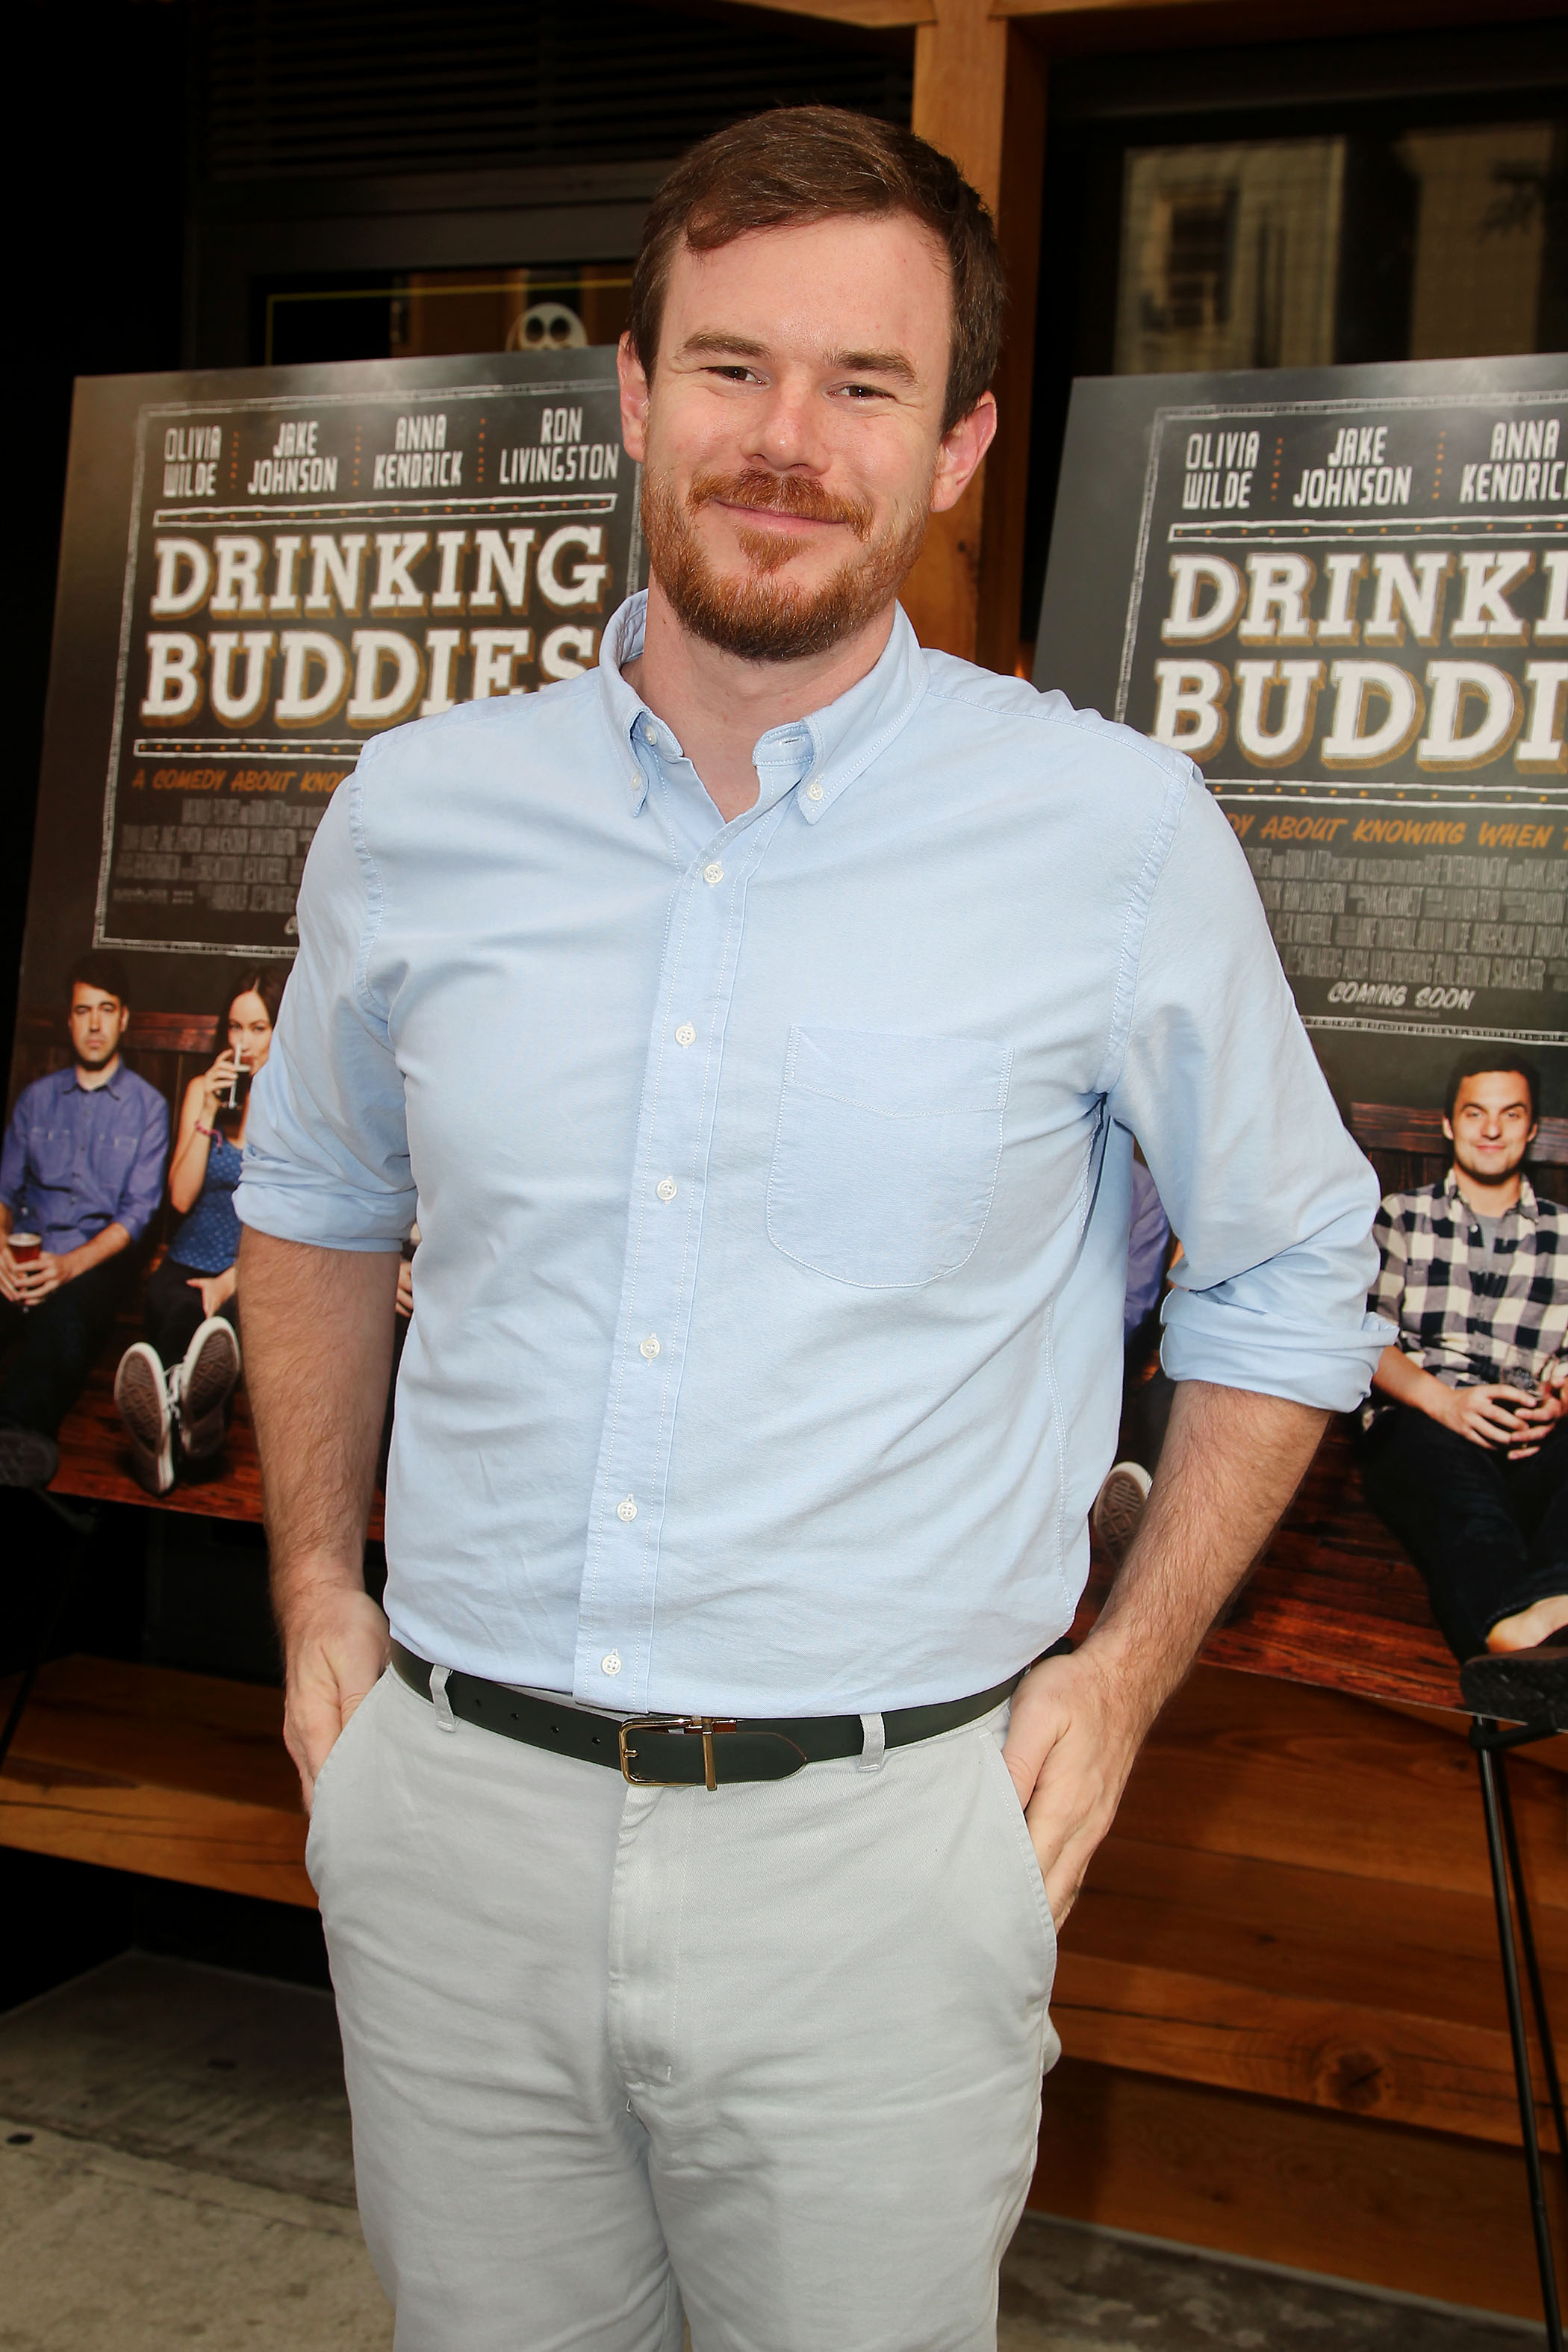 'Drinking Buddies' Director Joe Swanberg Chats With Us About Home Brewing, Improv and Making a Larger Film